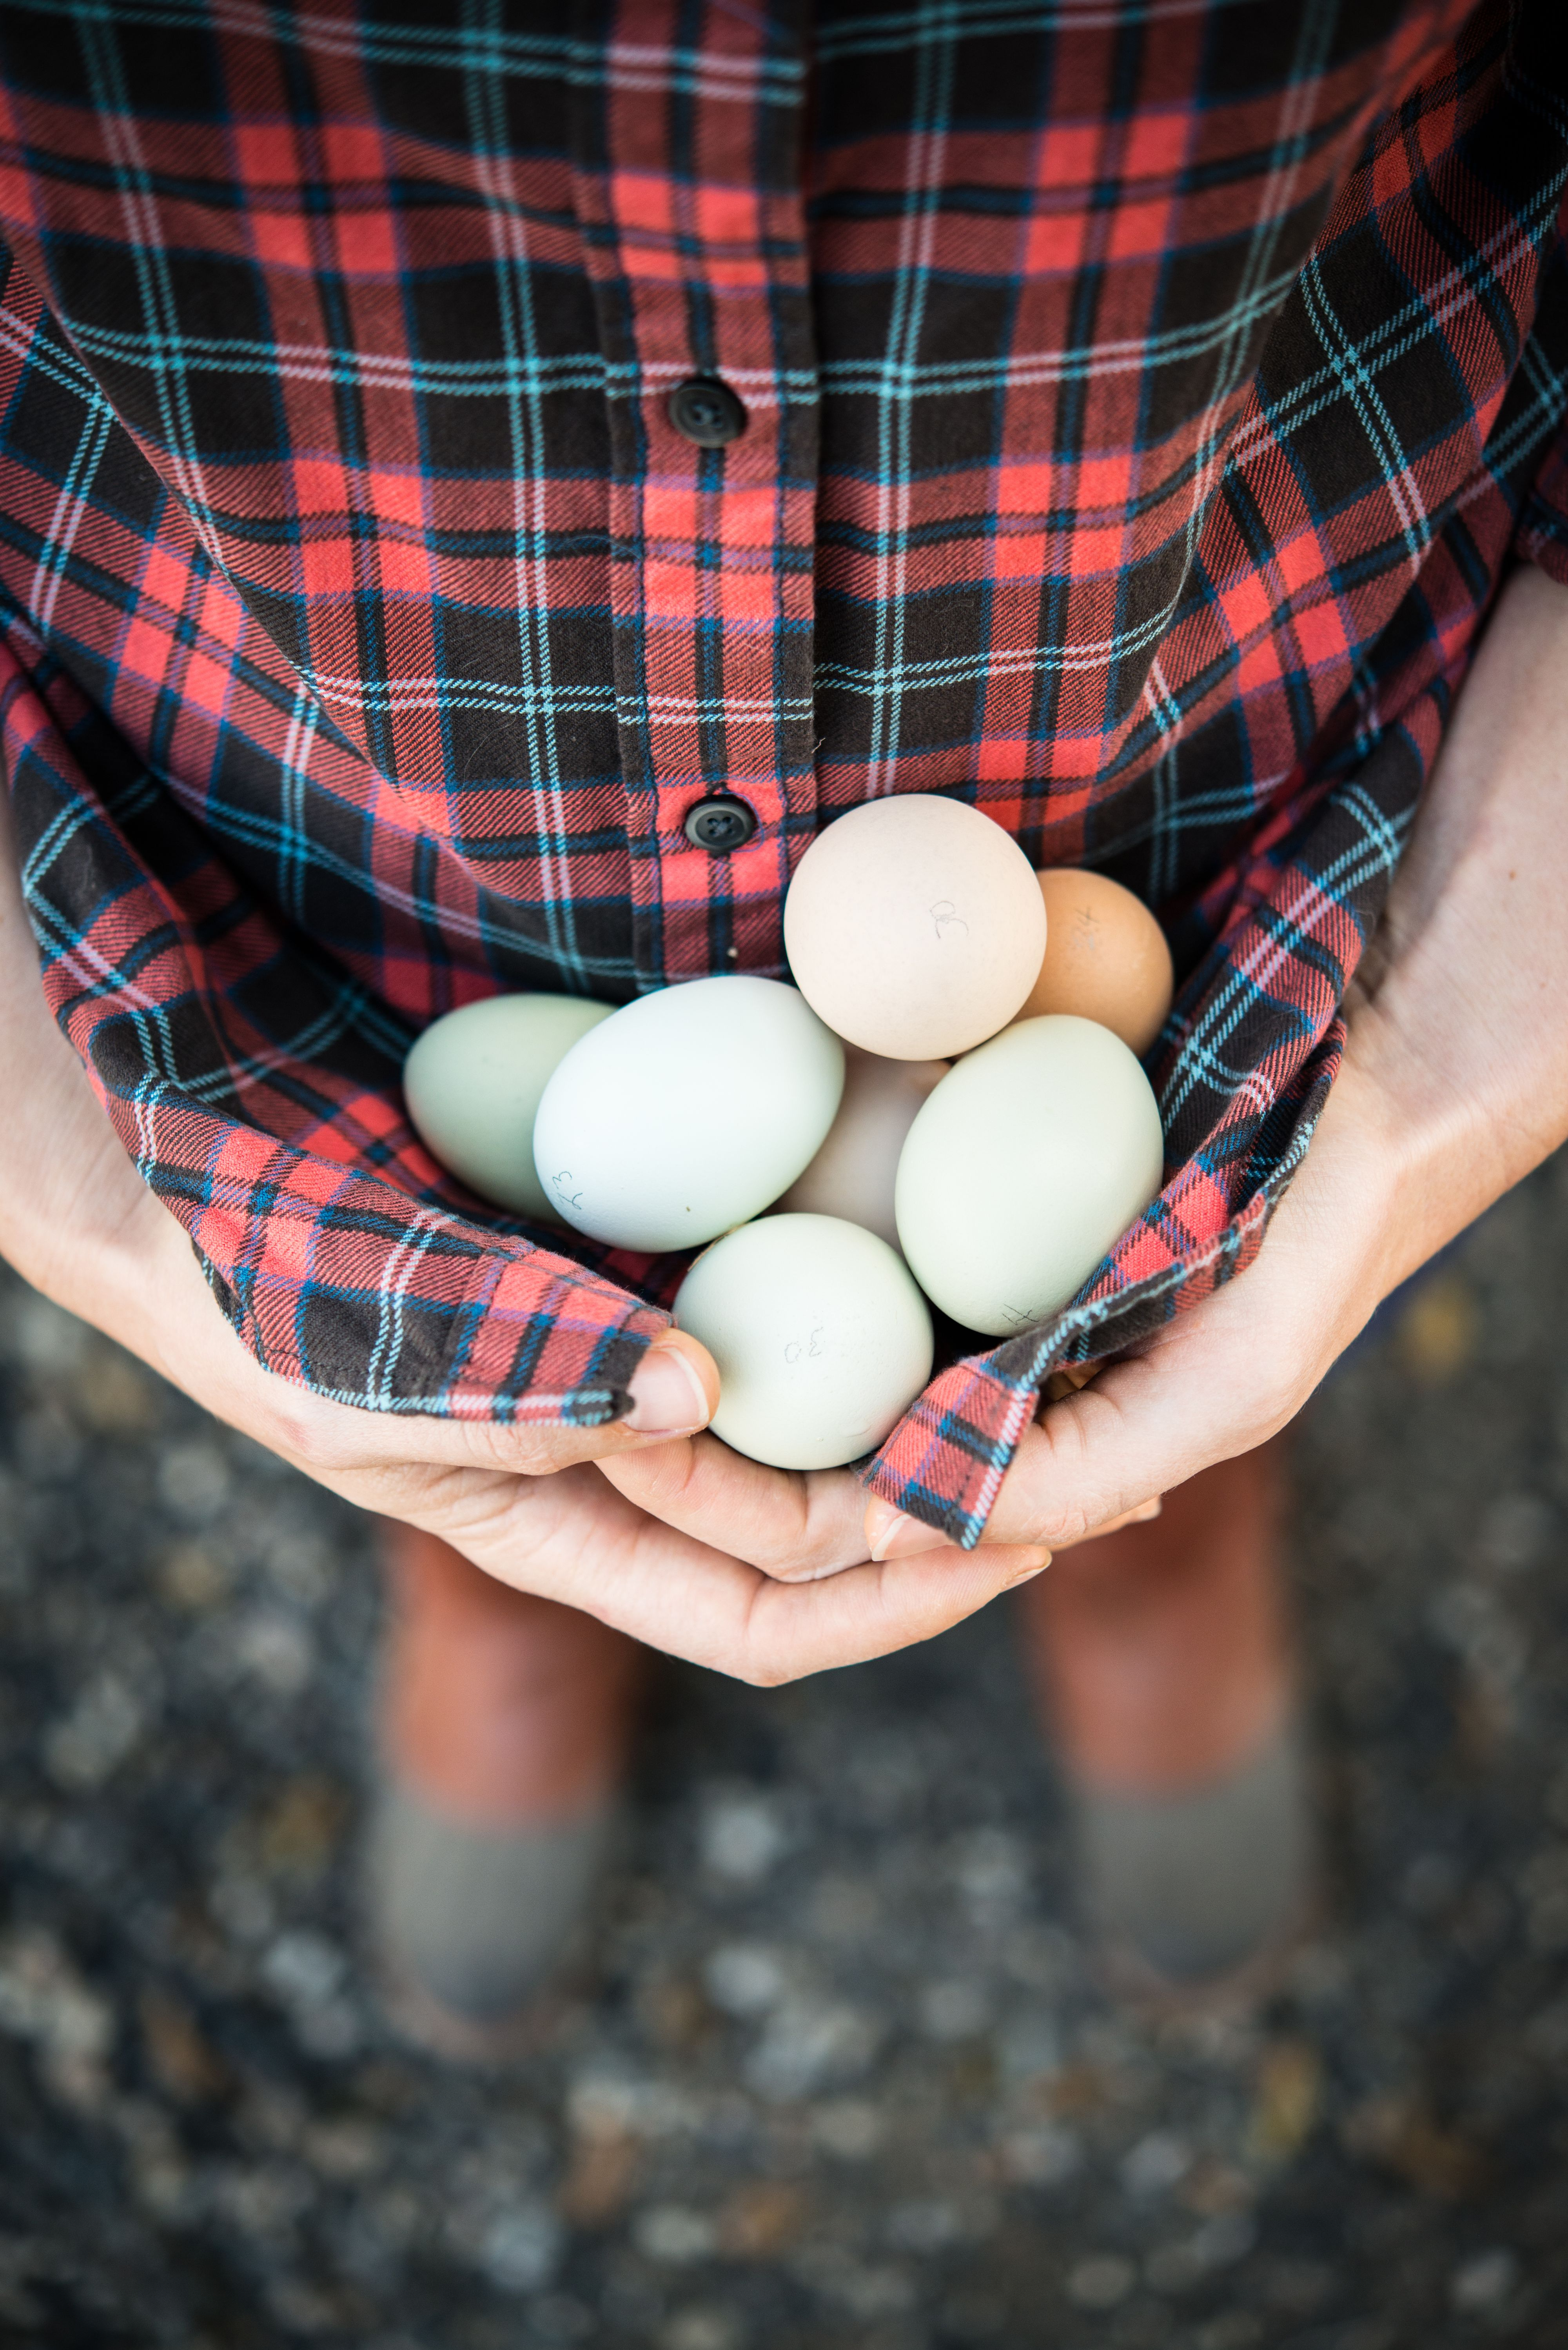 Holding daily eggs